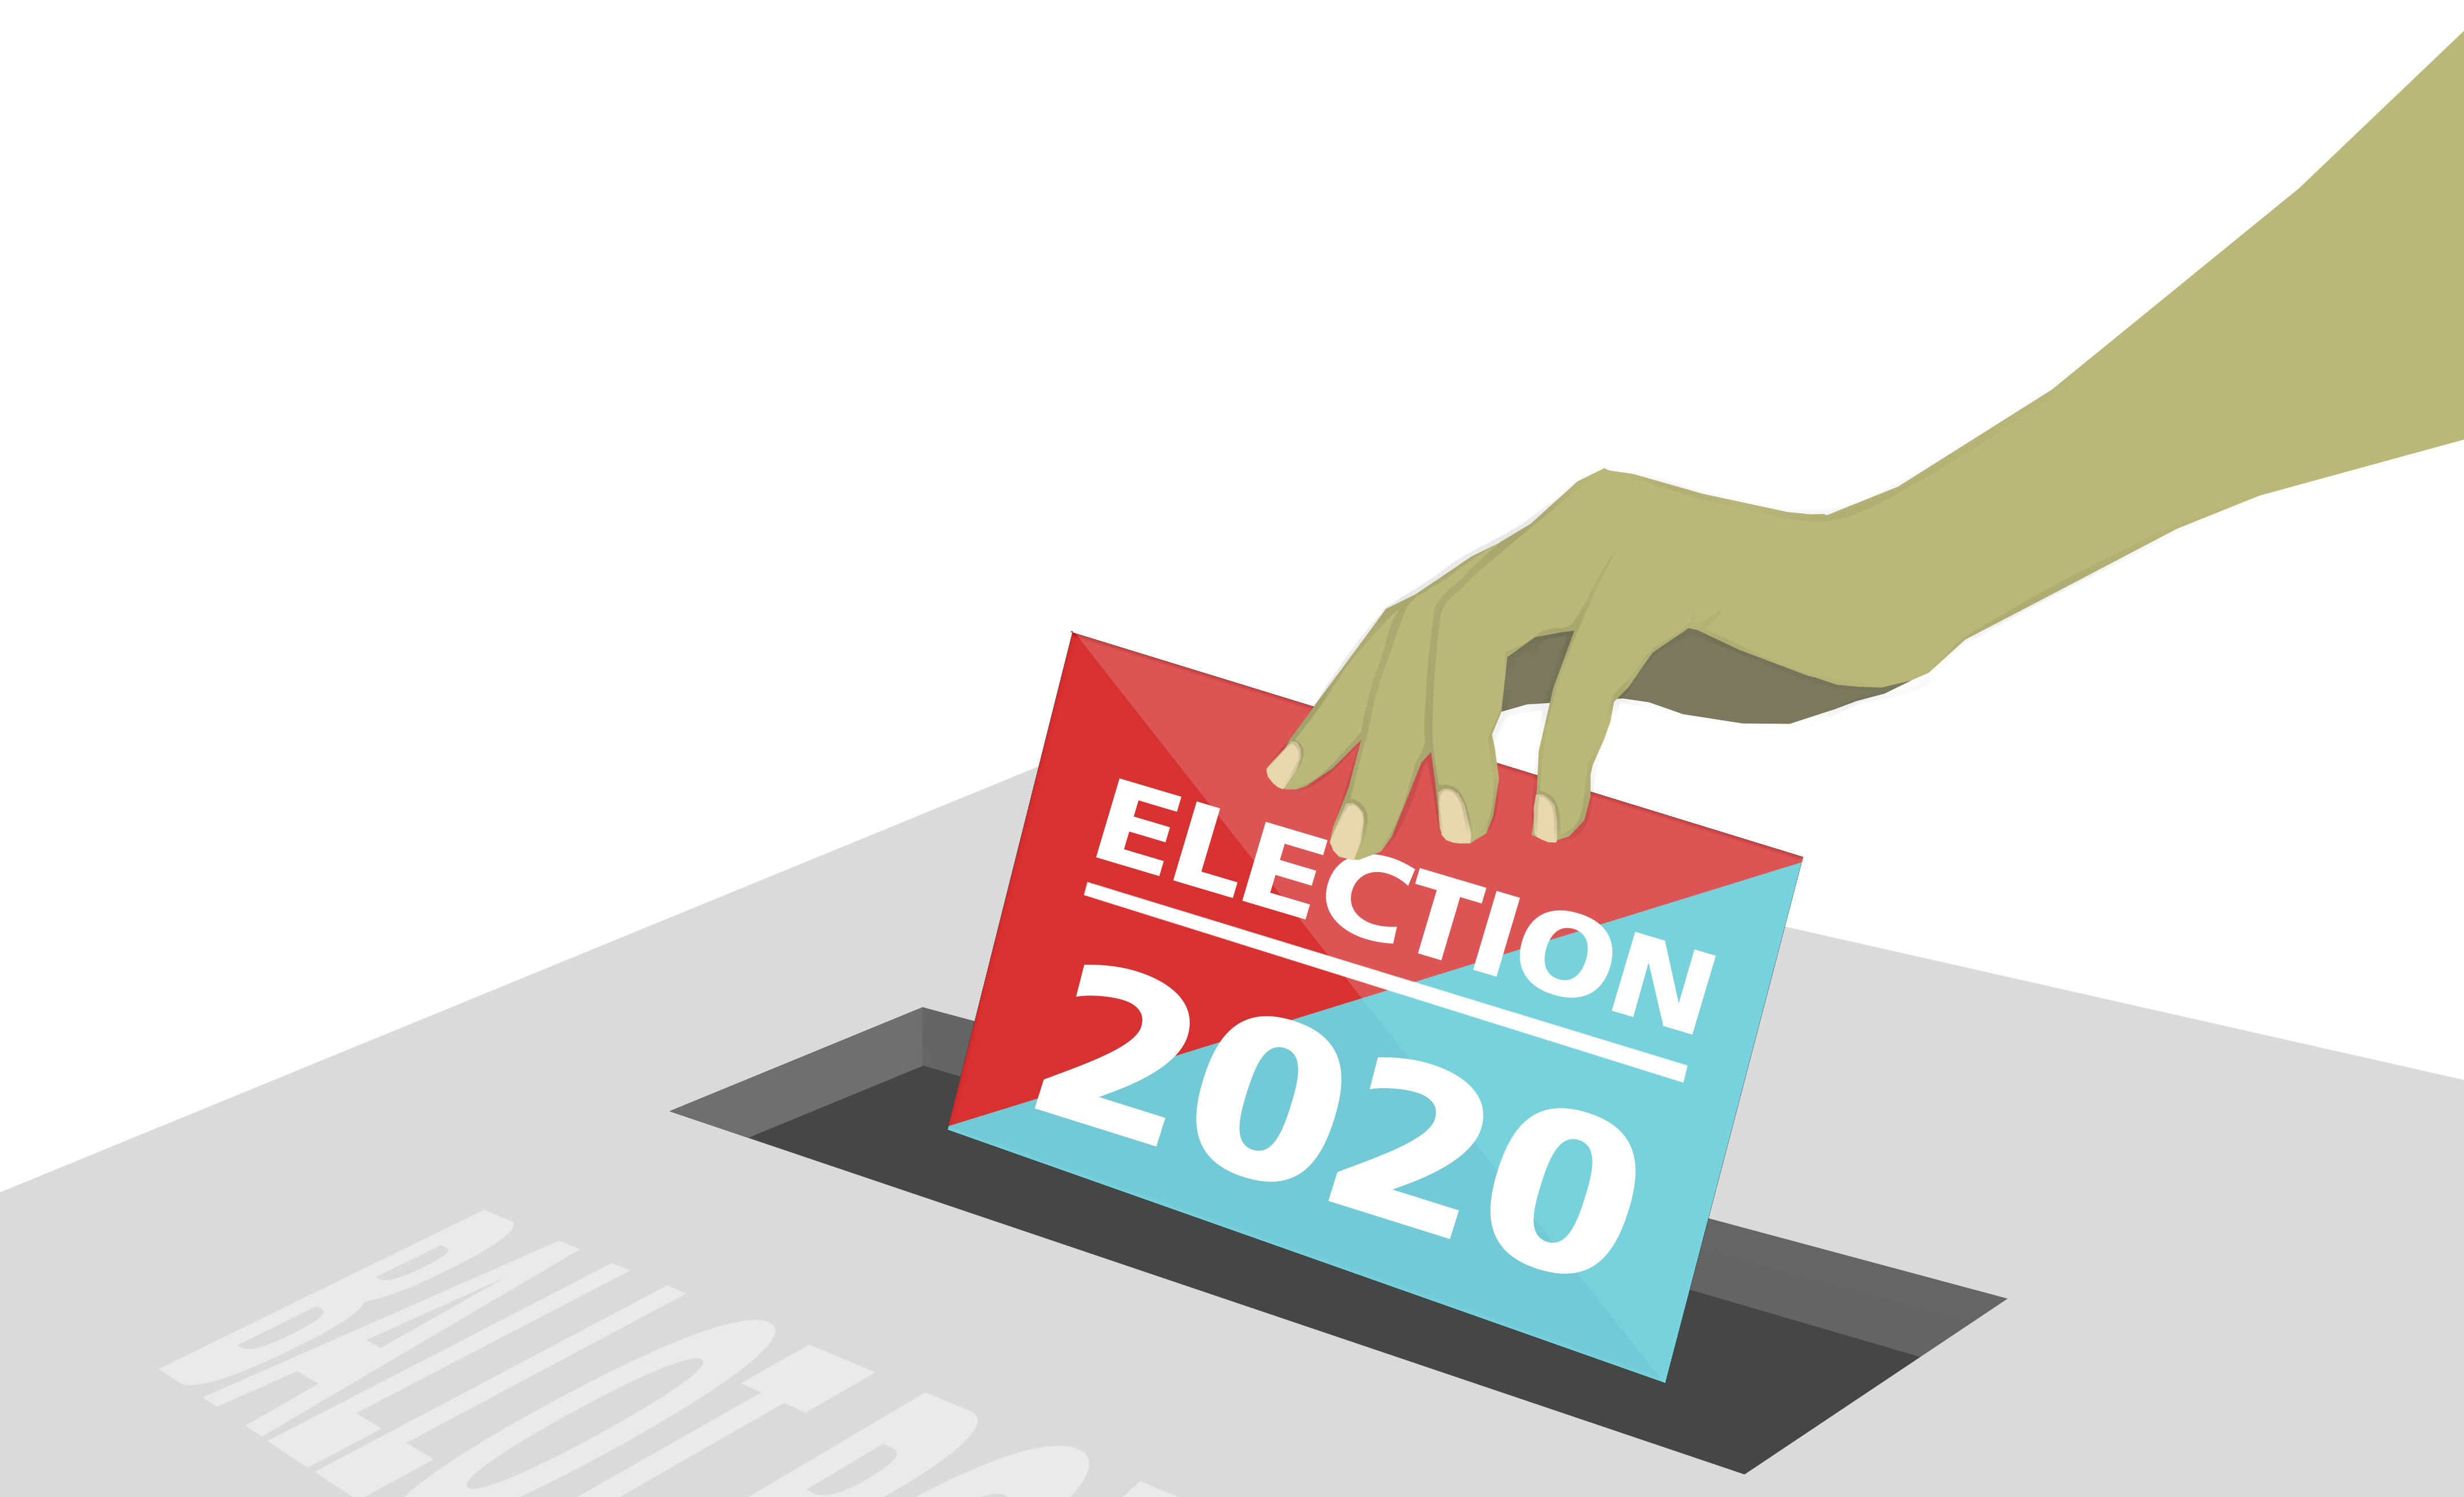 Ath panel previews 'big changes' from Election 2020